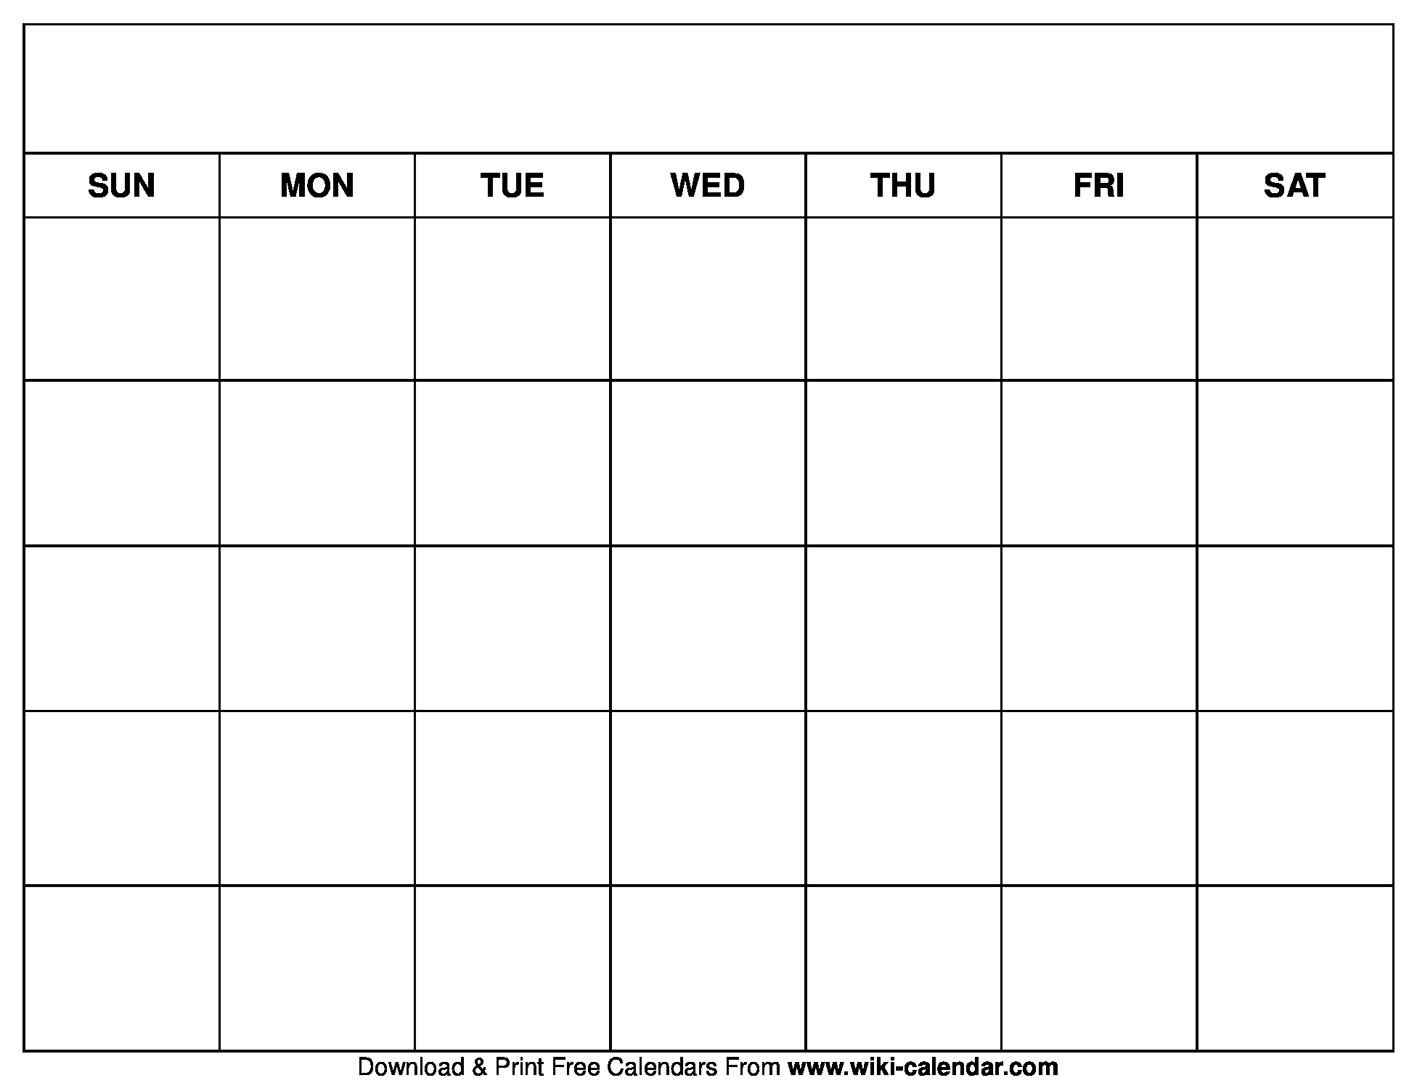 How To Print Numbers 1 To 31 – Get Your Calendar Printable Crosscards Free Monthly 1280 X 1040